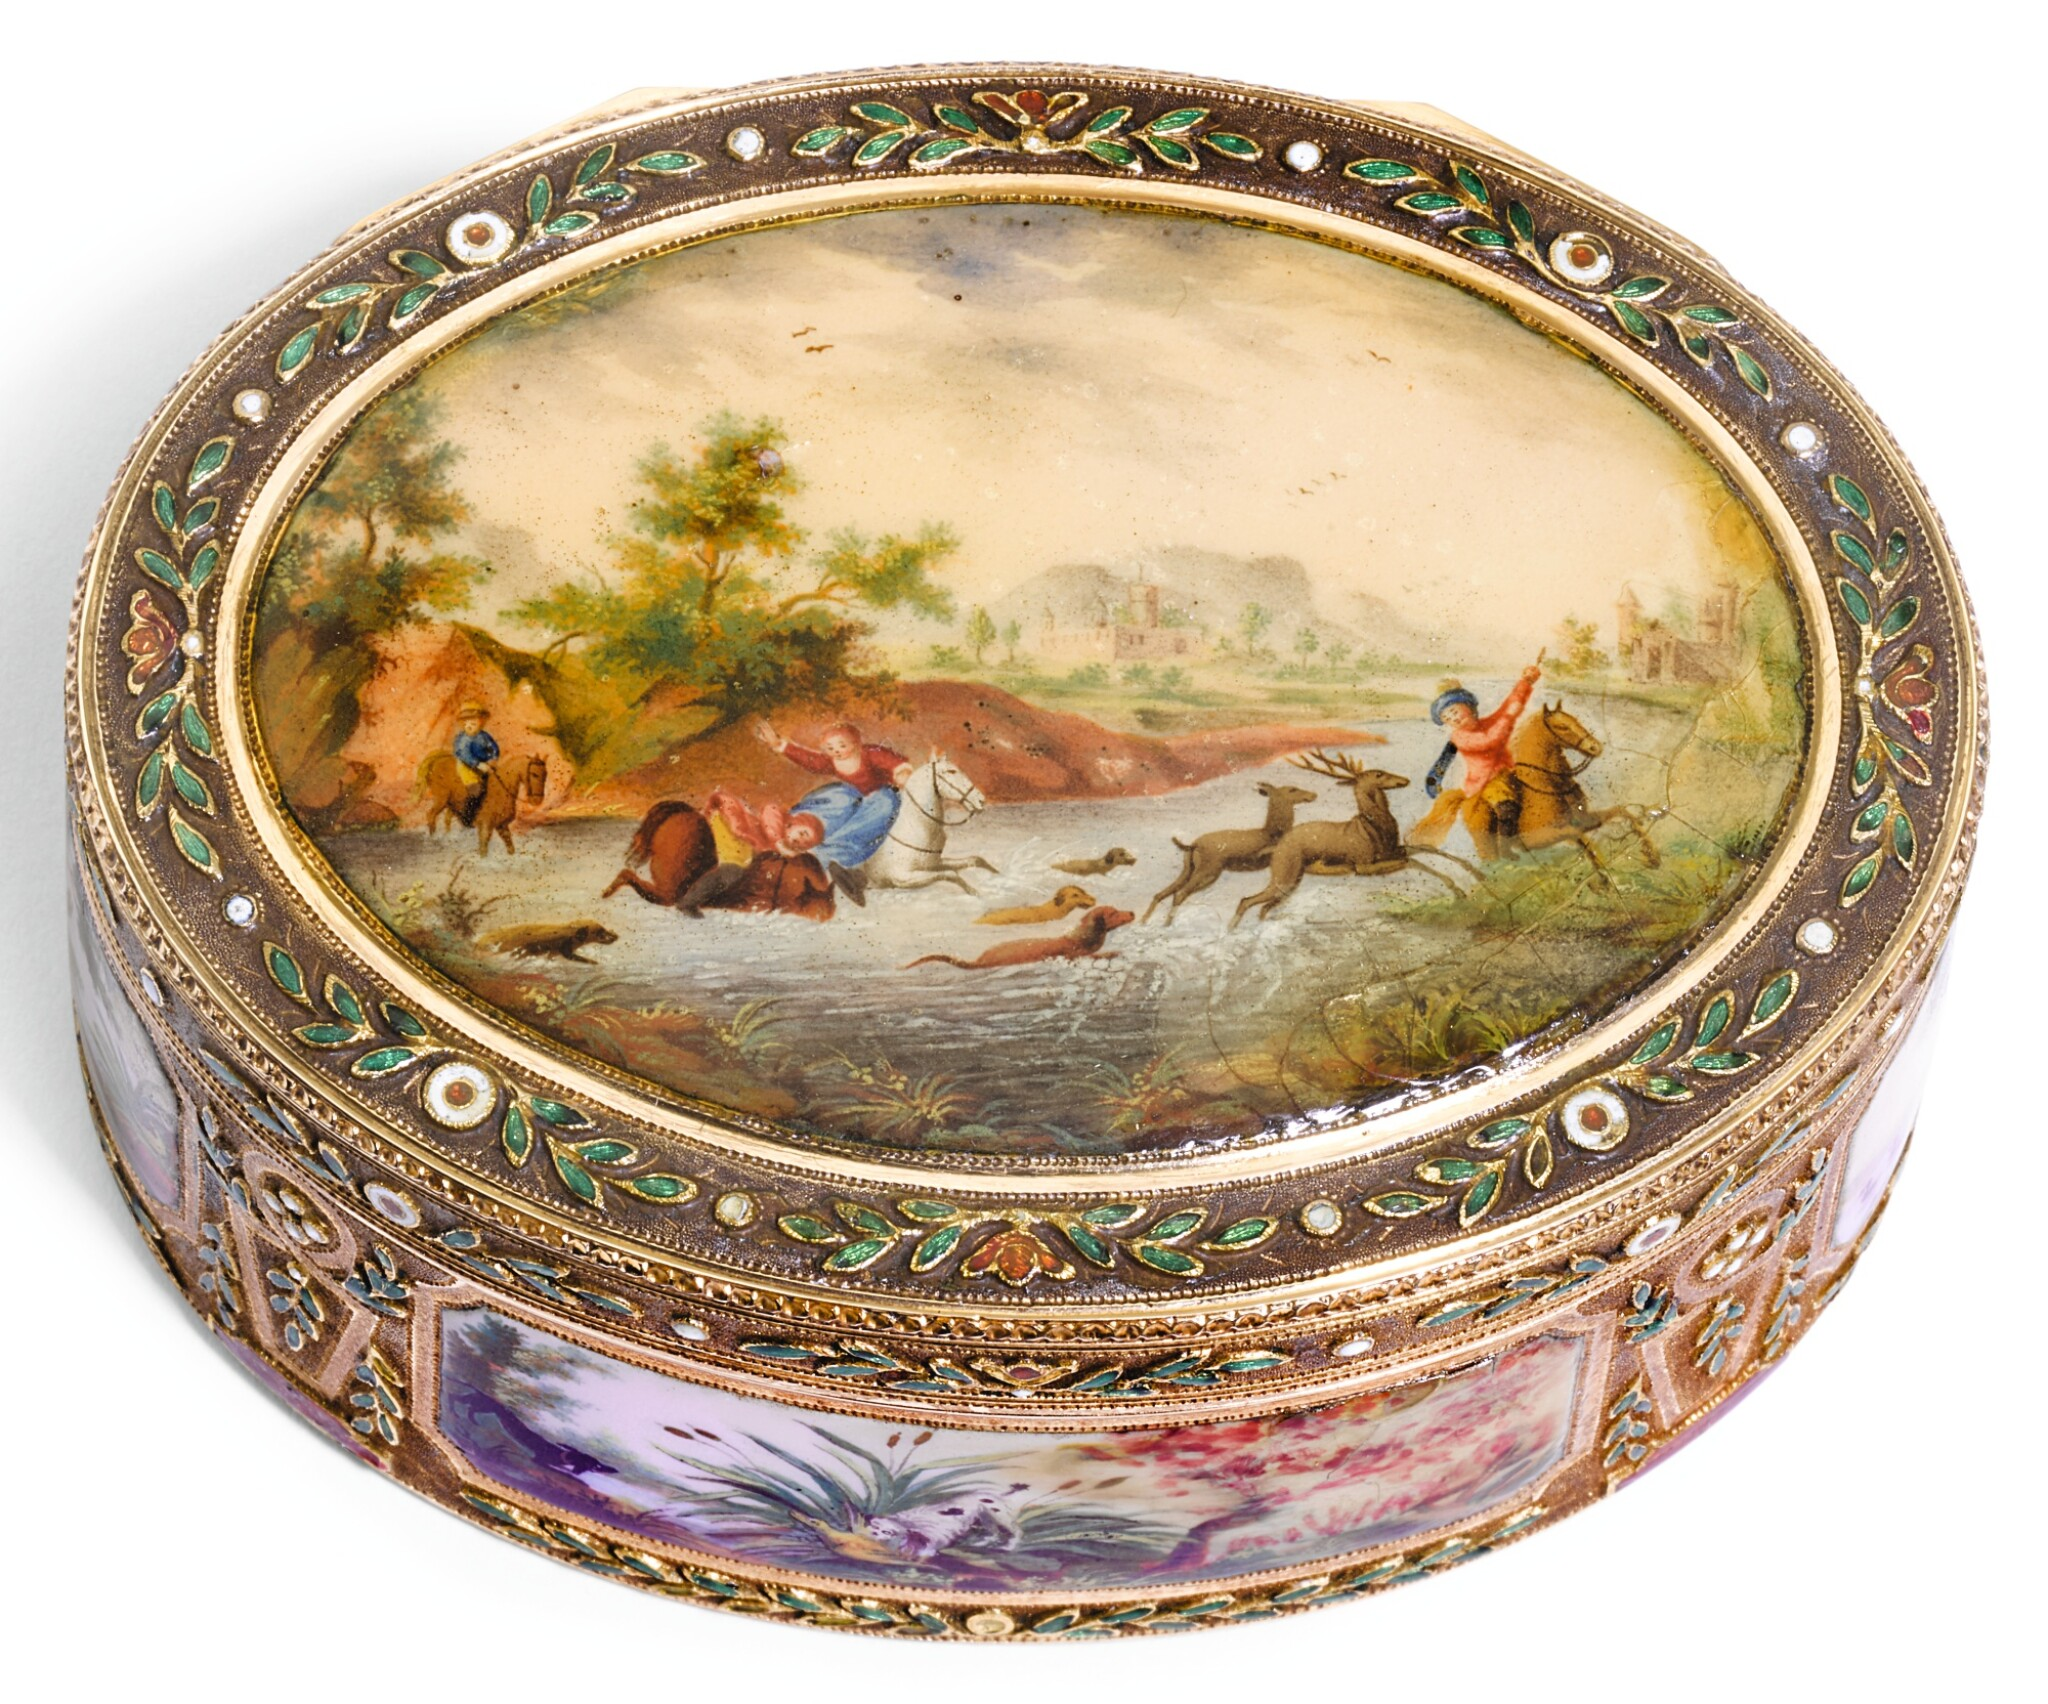 View full screen - View 1 of Lot 55. A GOLD ENAMEL AND SNUFF BOX, PROBABLY GERMAN, LATE 18TH CENTURY.